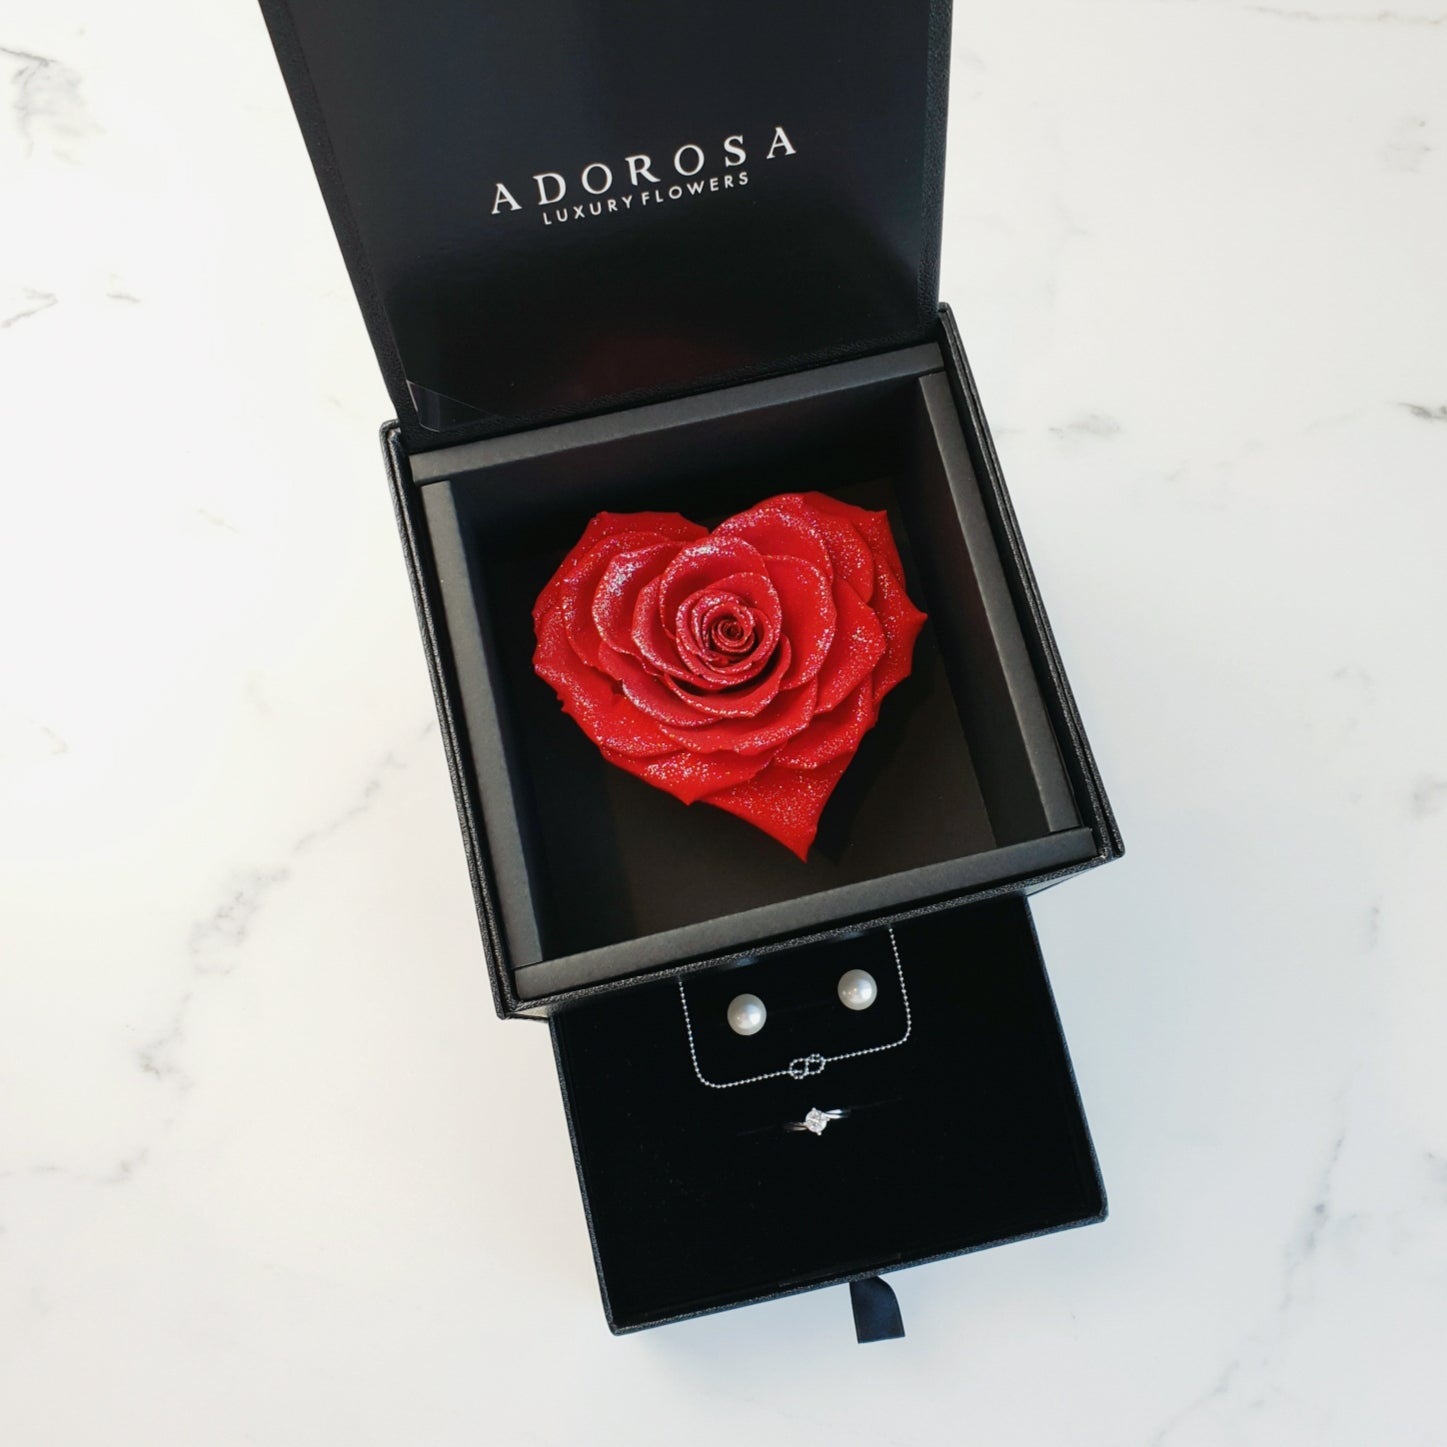 heart rose, rose box, heart rose box, long lasting rose, preserved roses, preserved flowers, sydney rose delivery, luxury rose sydney, rose box sydney, flower box sydney